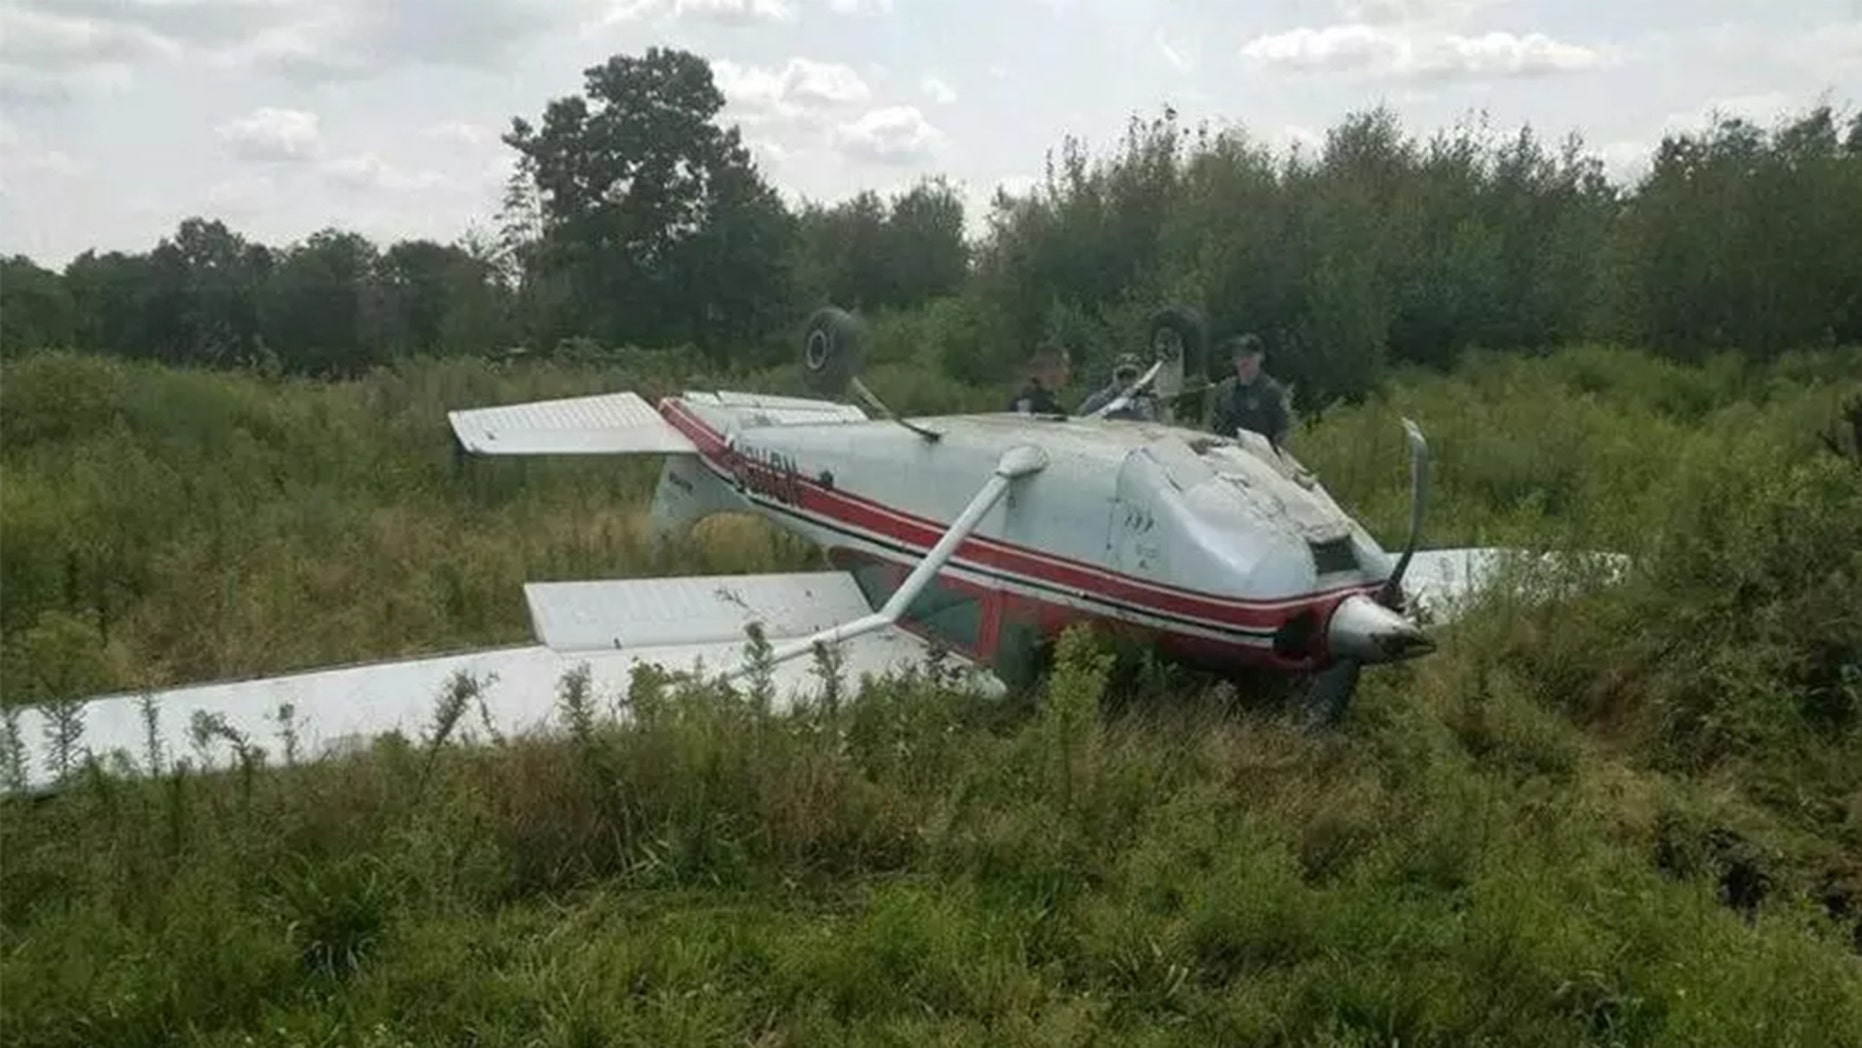 """The flipping [of the plane] was me running out of runway. I was coming in too fast due to difficulties with my engine, the flaps, and various plane issues."""